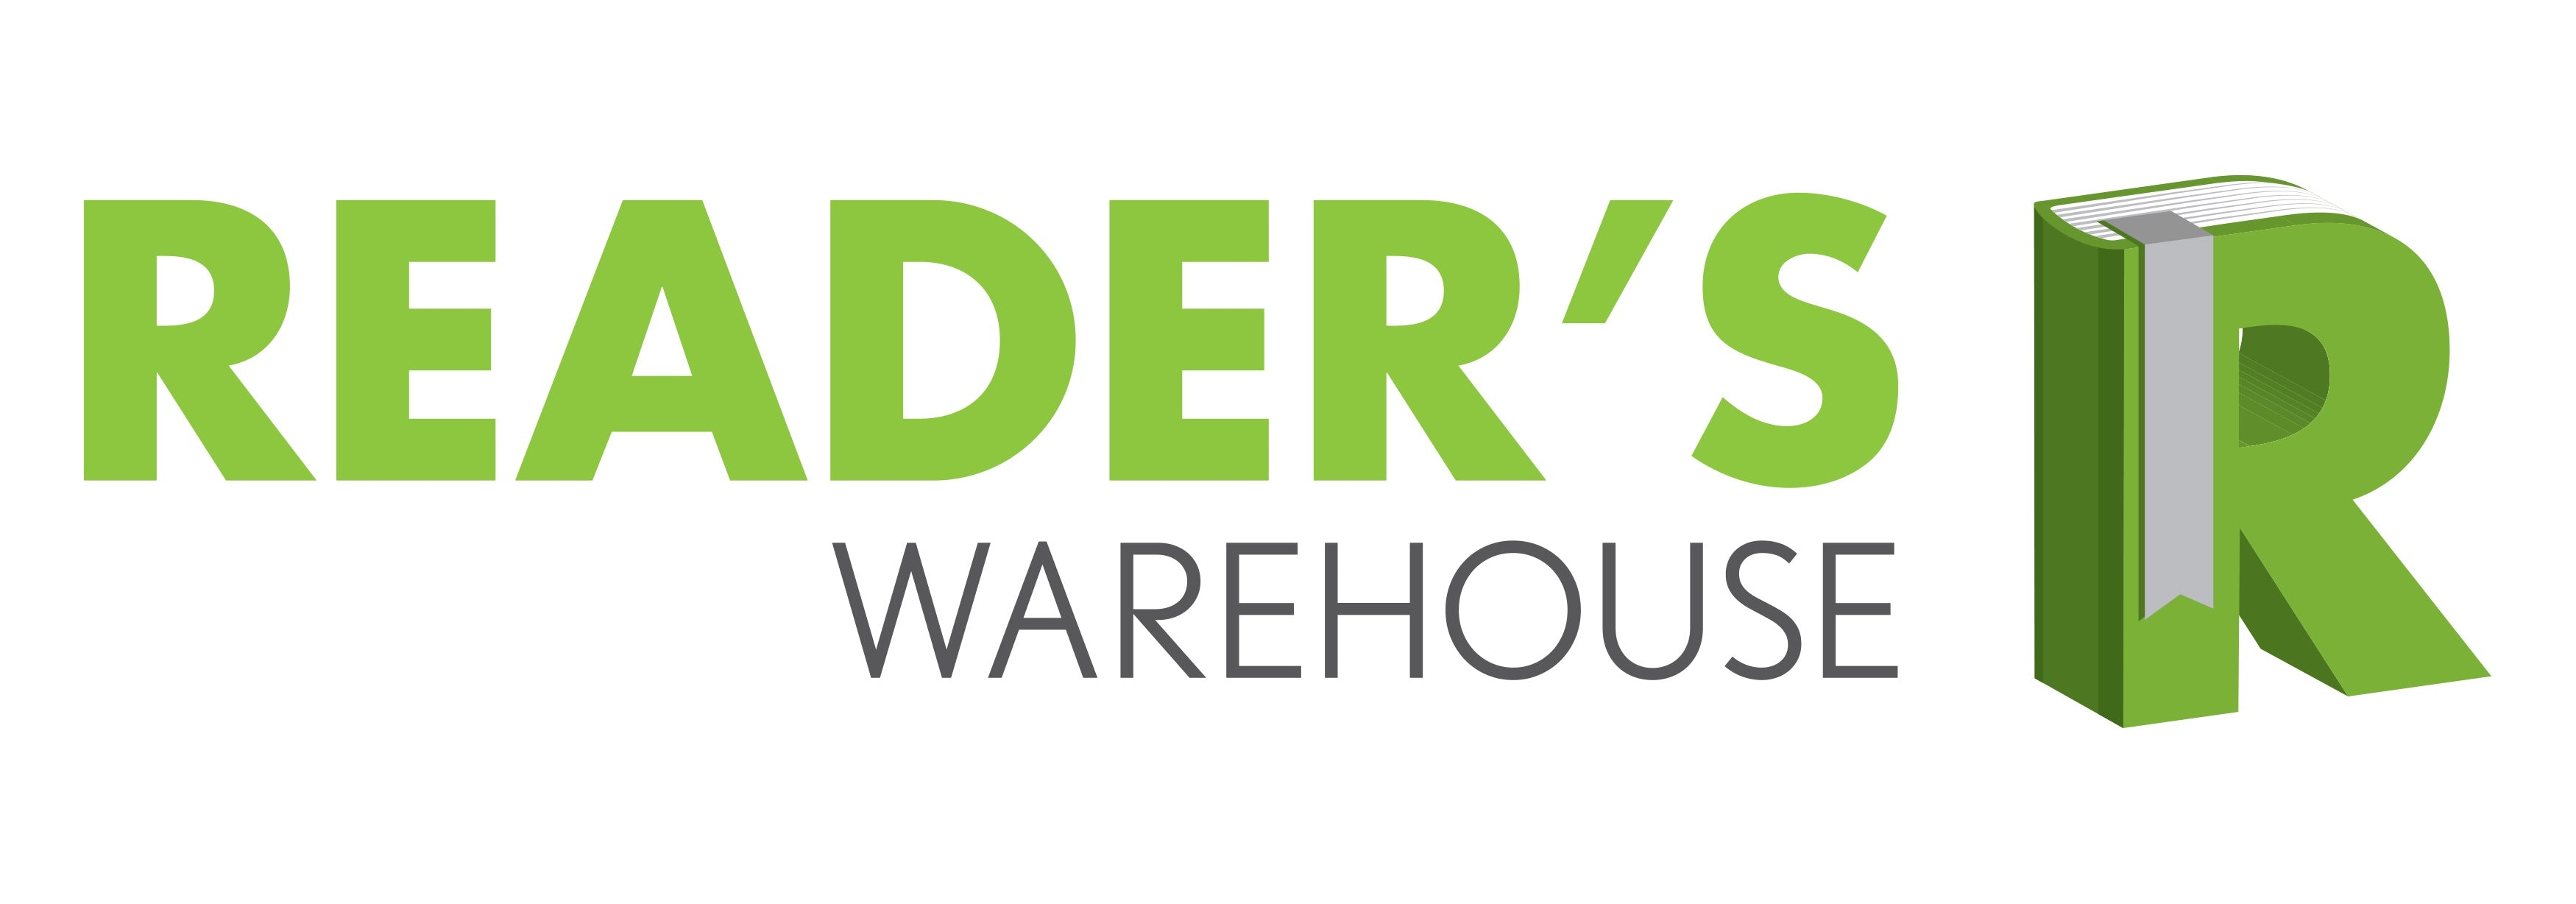 readers warehouse online